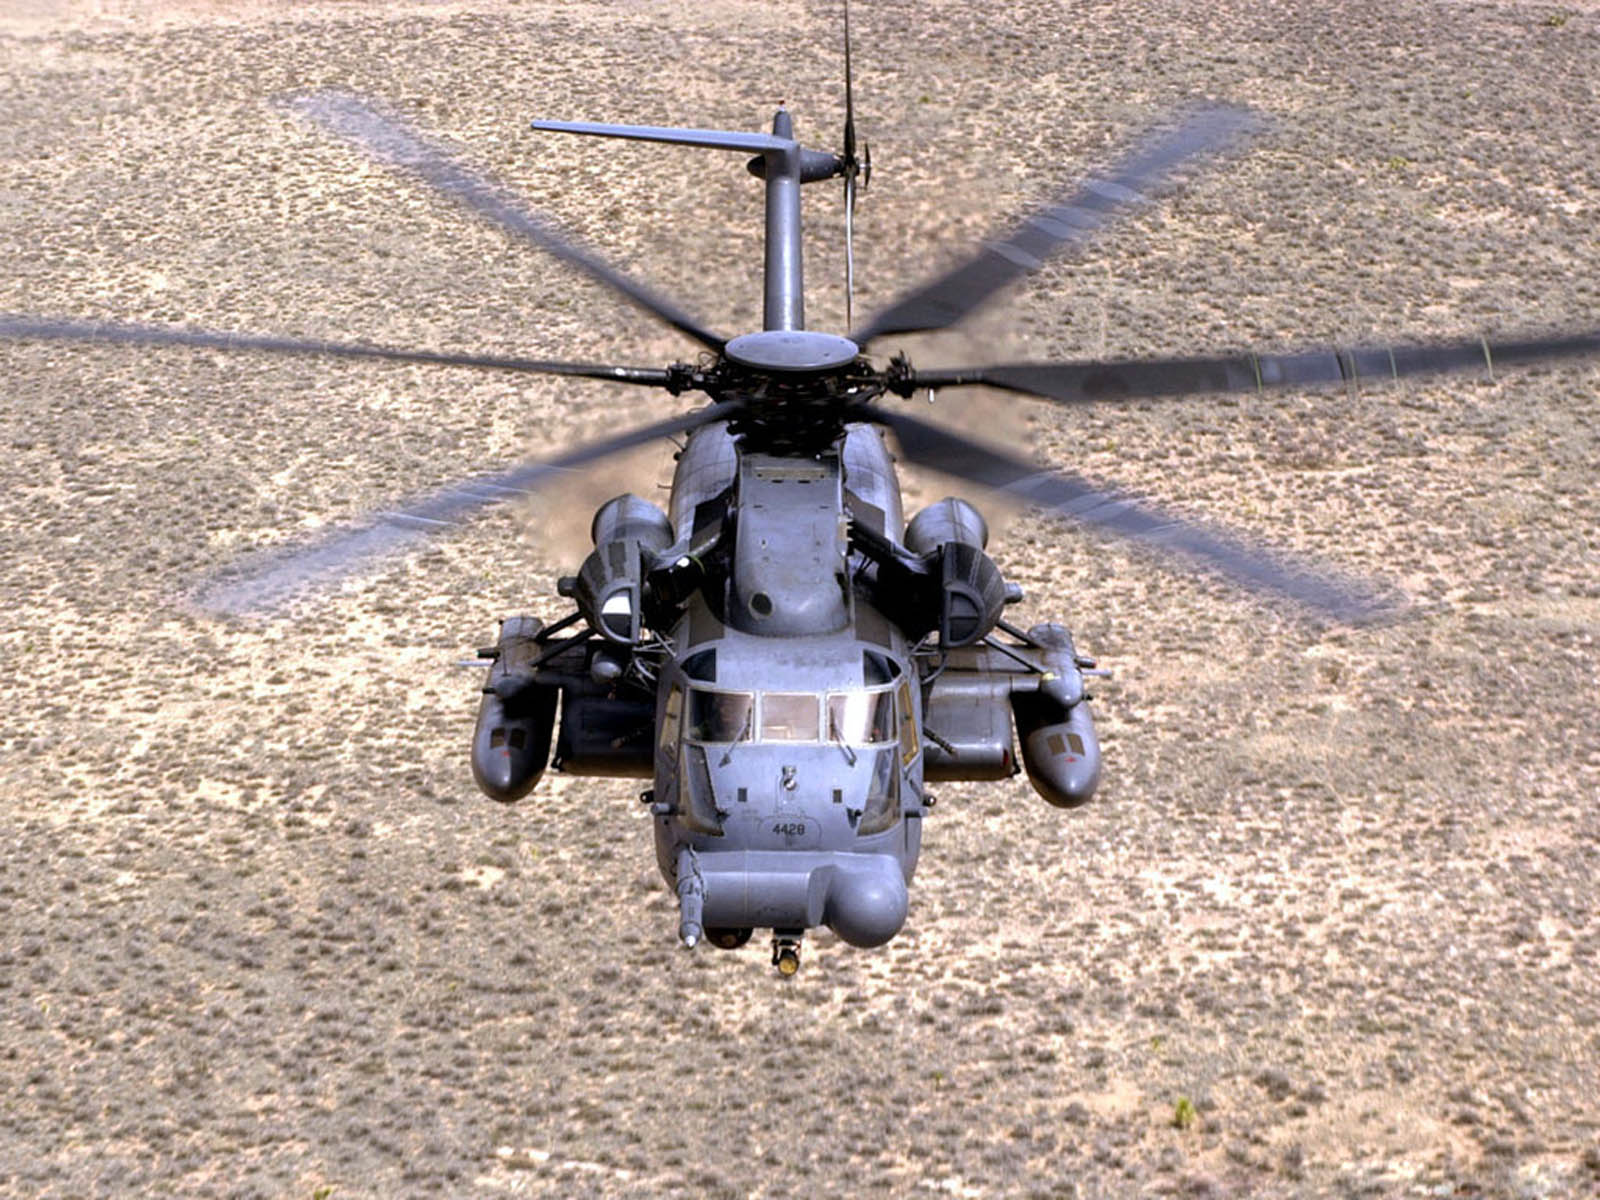 Mh 53 Pave Low Helicopter Wallpapers Military Helicopters